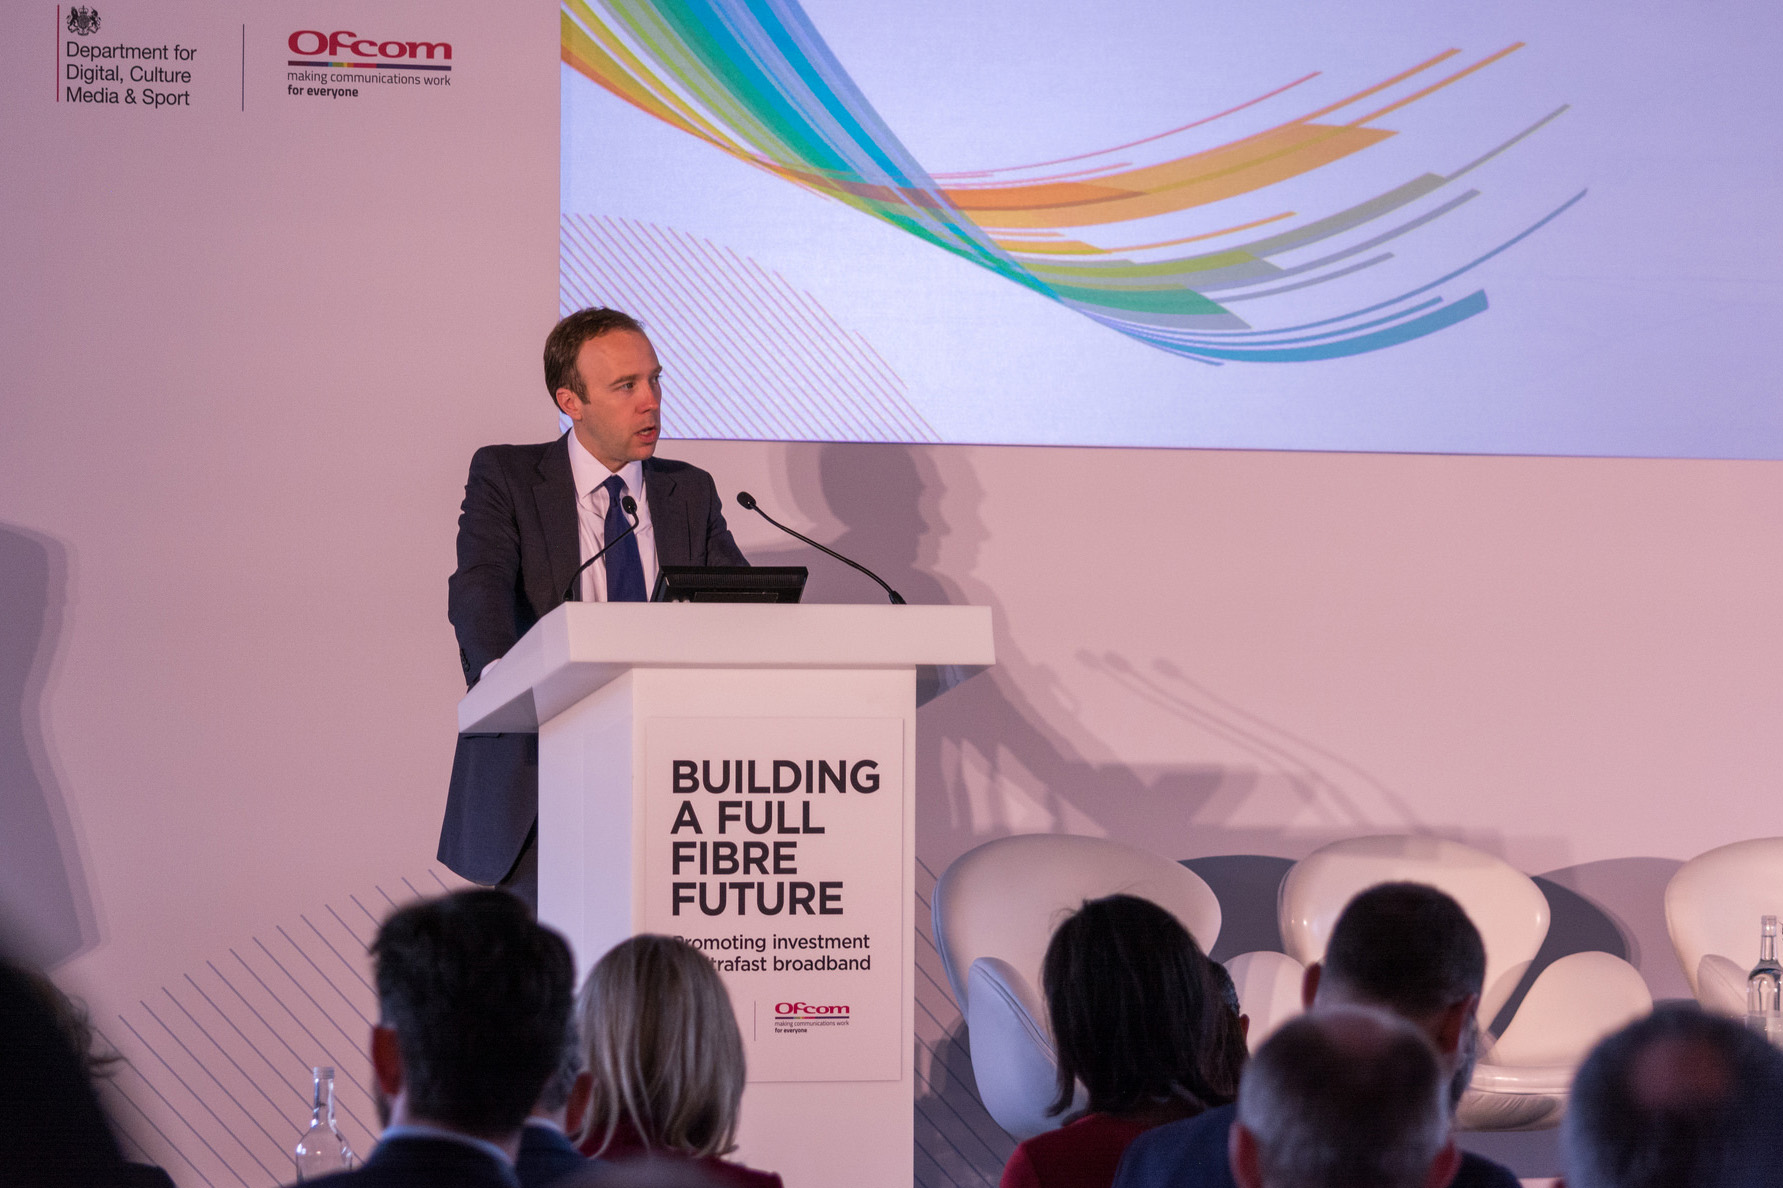 Man (Matt Hancock) speaking at podium on stage in front of an audience at the Building a Full-Fibre Future event